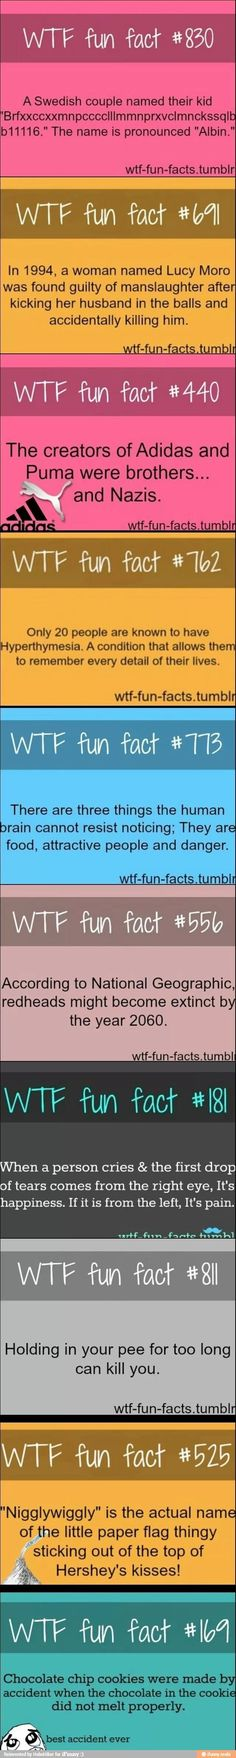 Fun facts....don't like the red-head part though...get to producing folks!! lmao